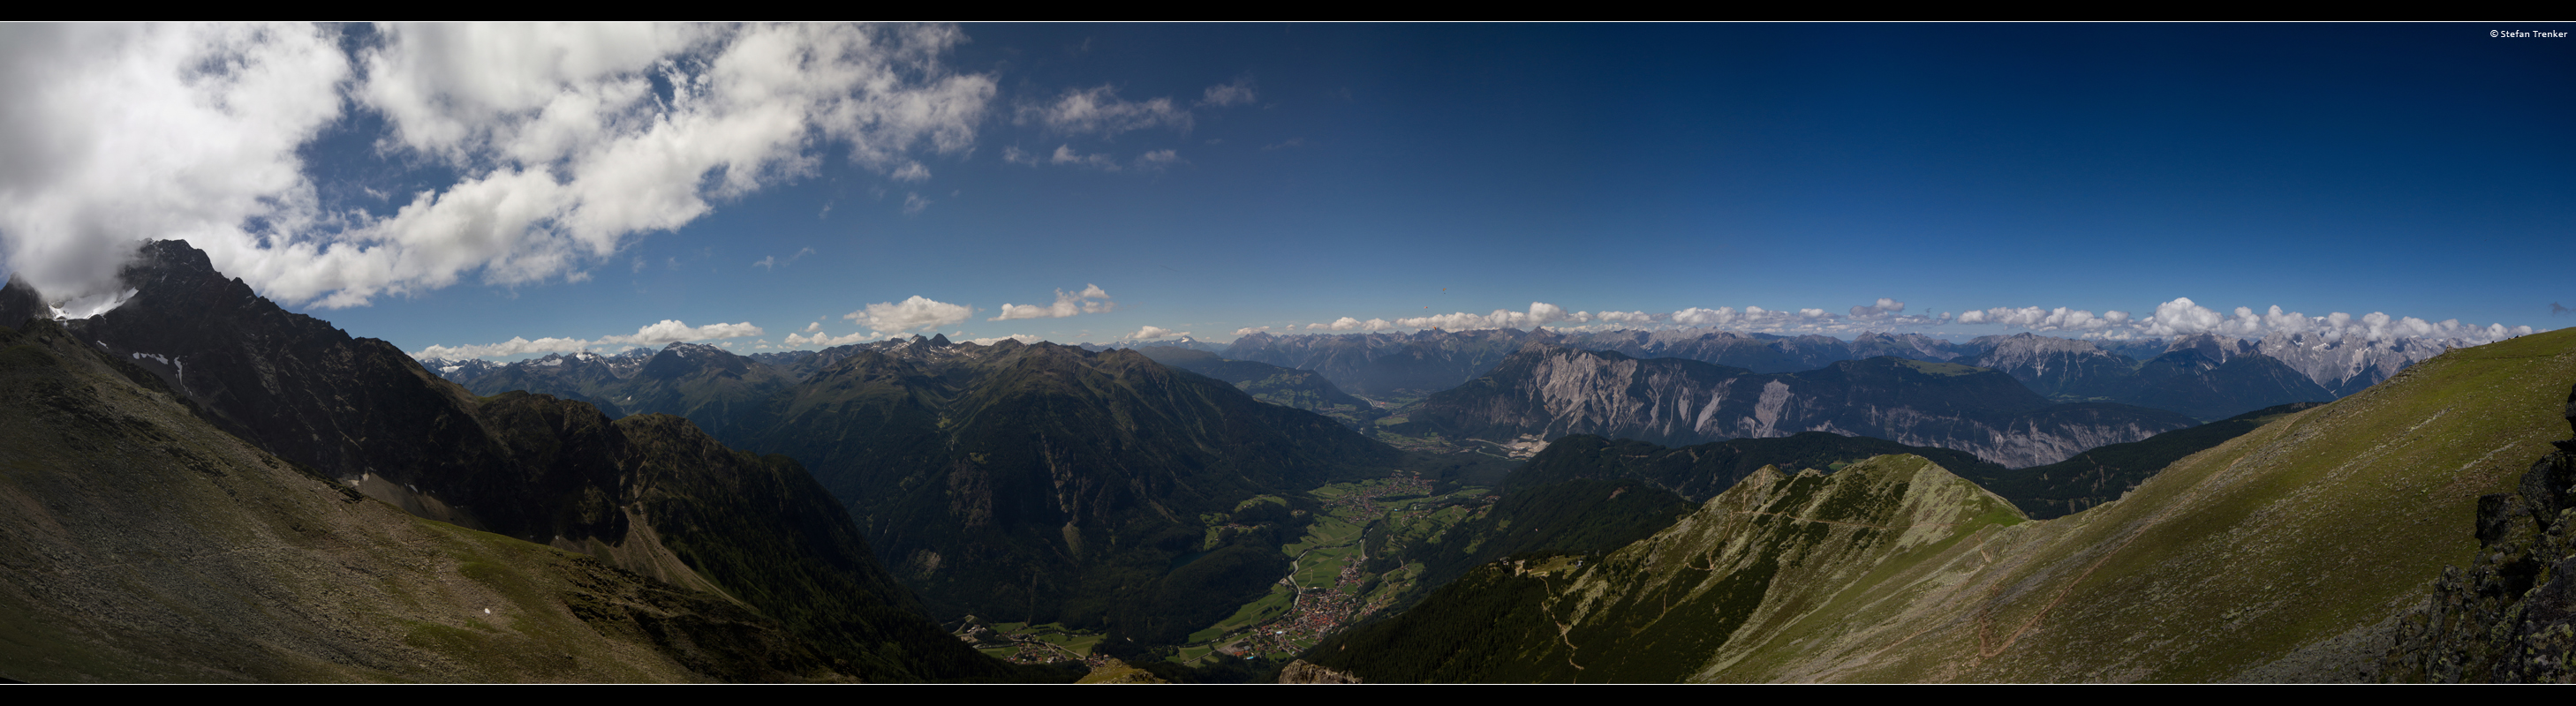 panorama, pano, landscape, Austria, Tyrol, mountains,